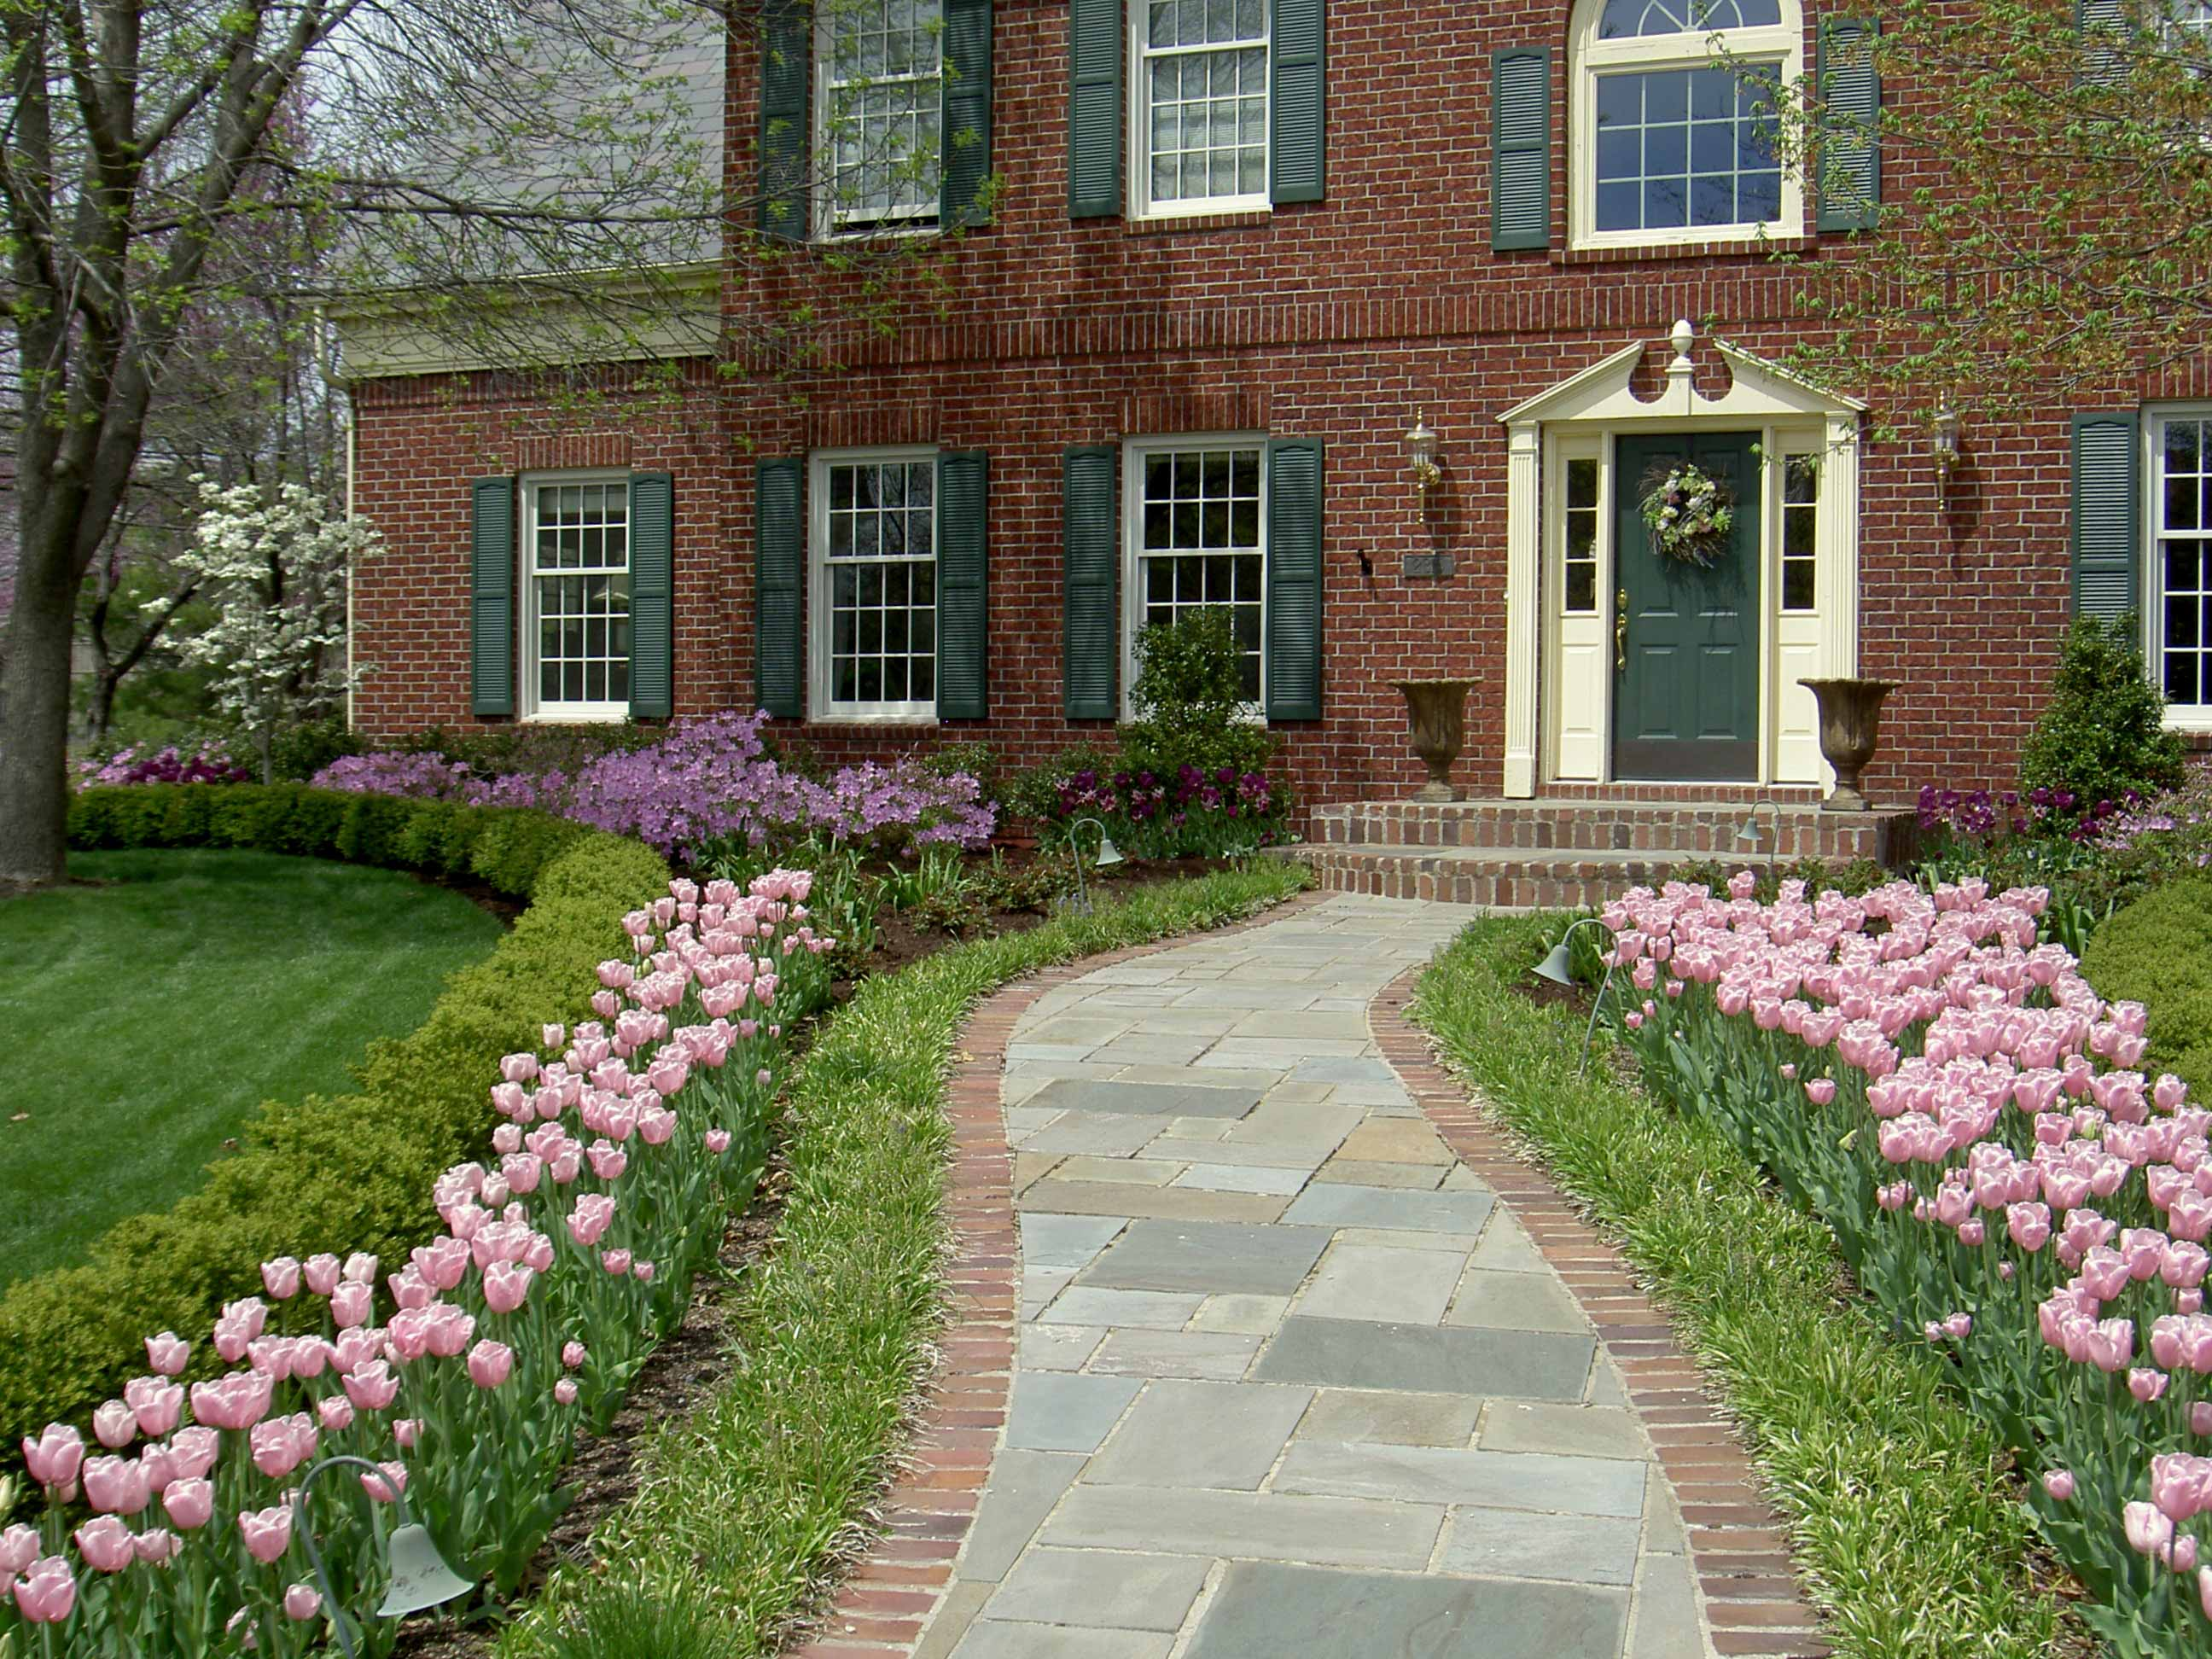 walkway designs for homes. To learn more about walkway designs or patio by Rosehill Gardens of  Kansas City call 816 941 4777 Breathtaking Walkway Patio Designs